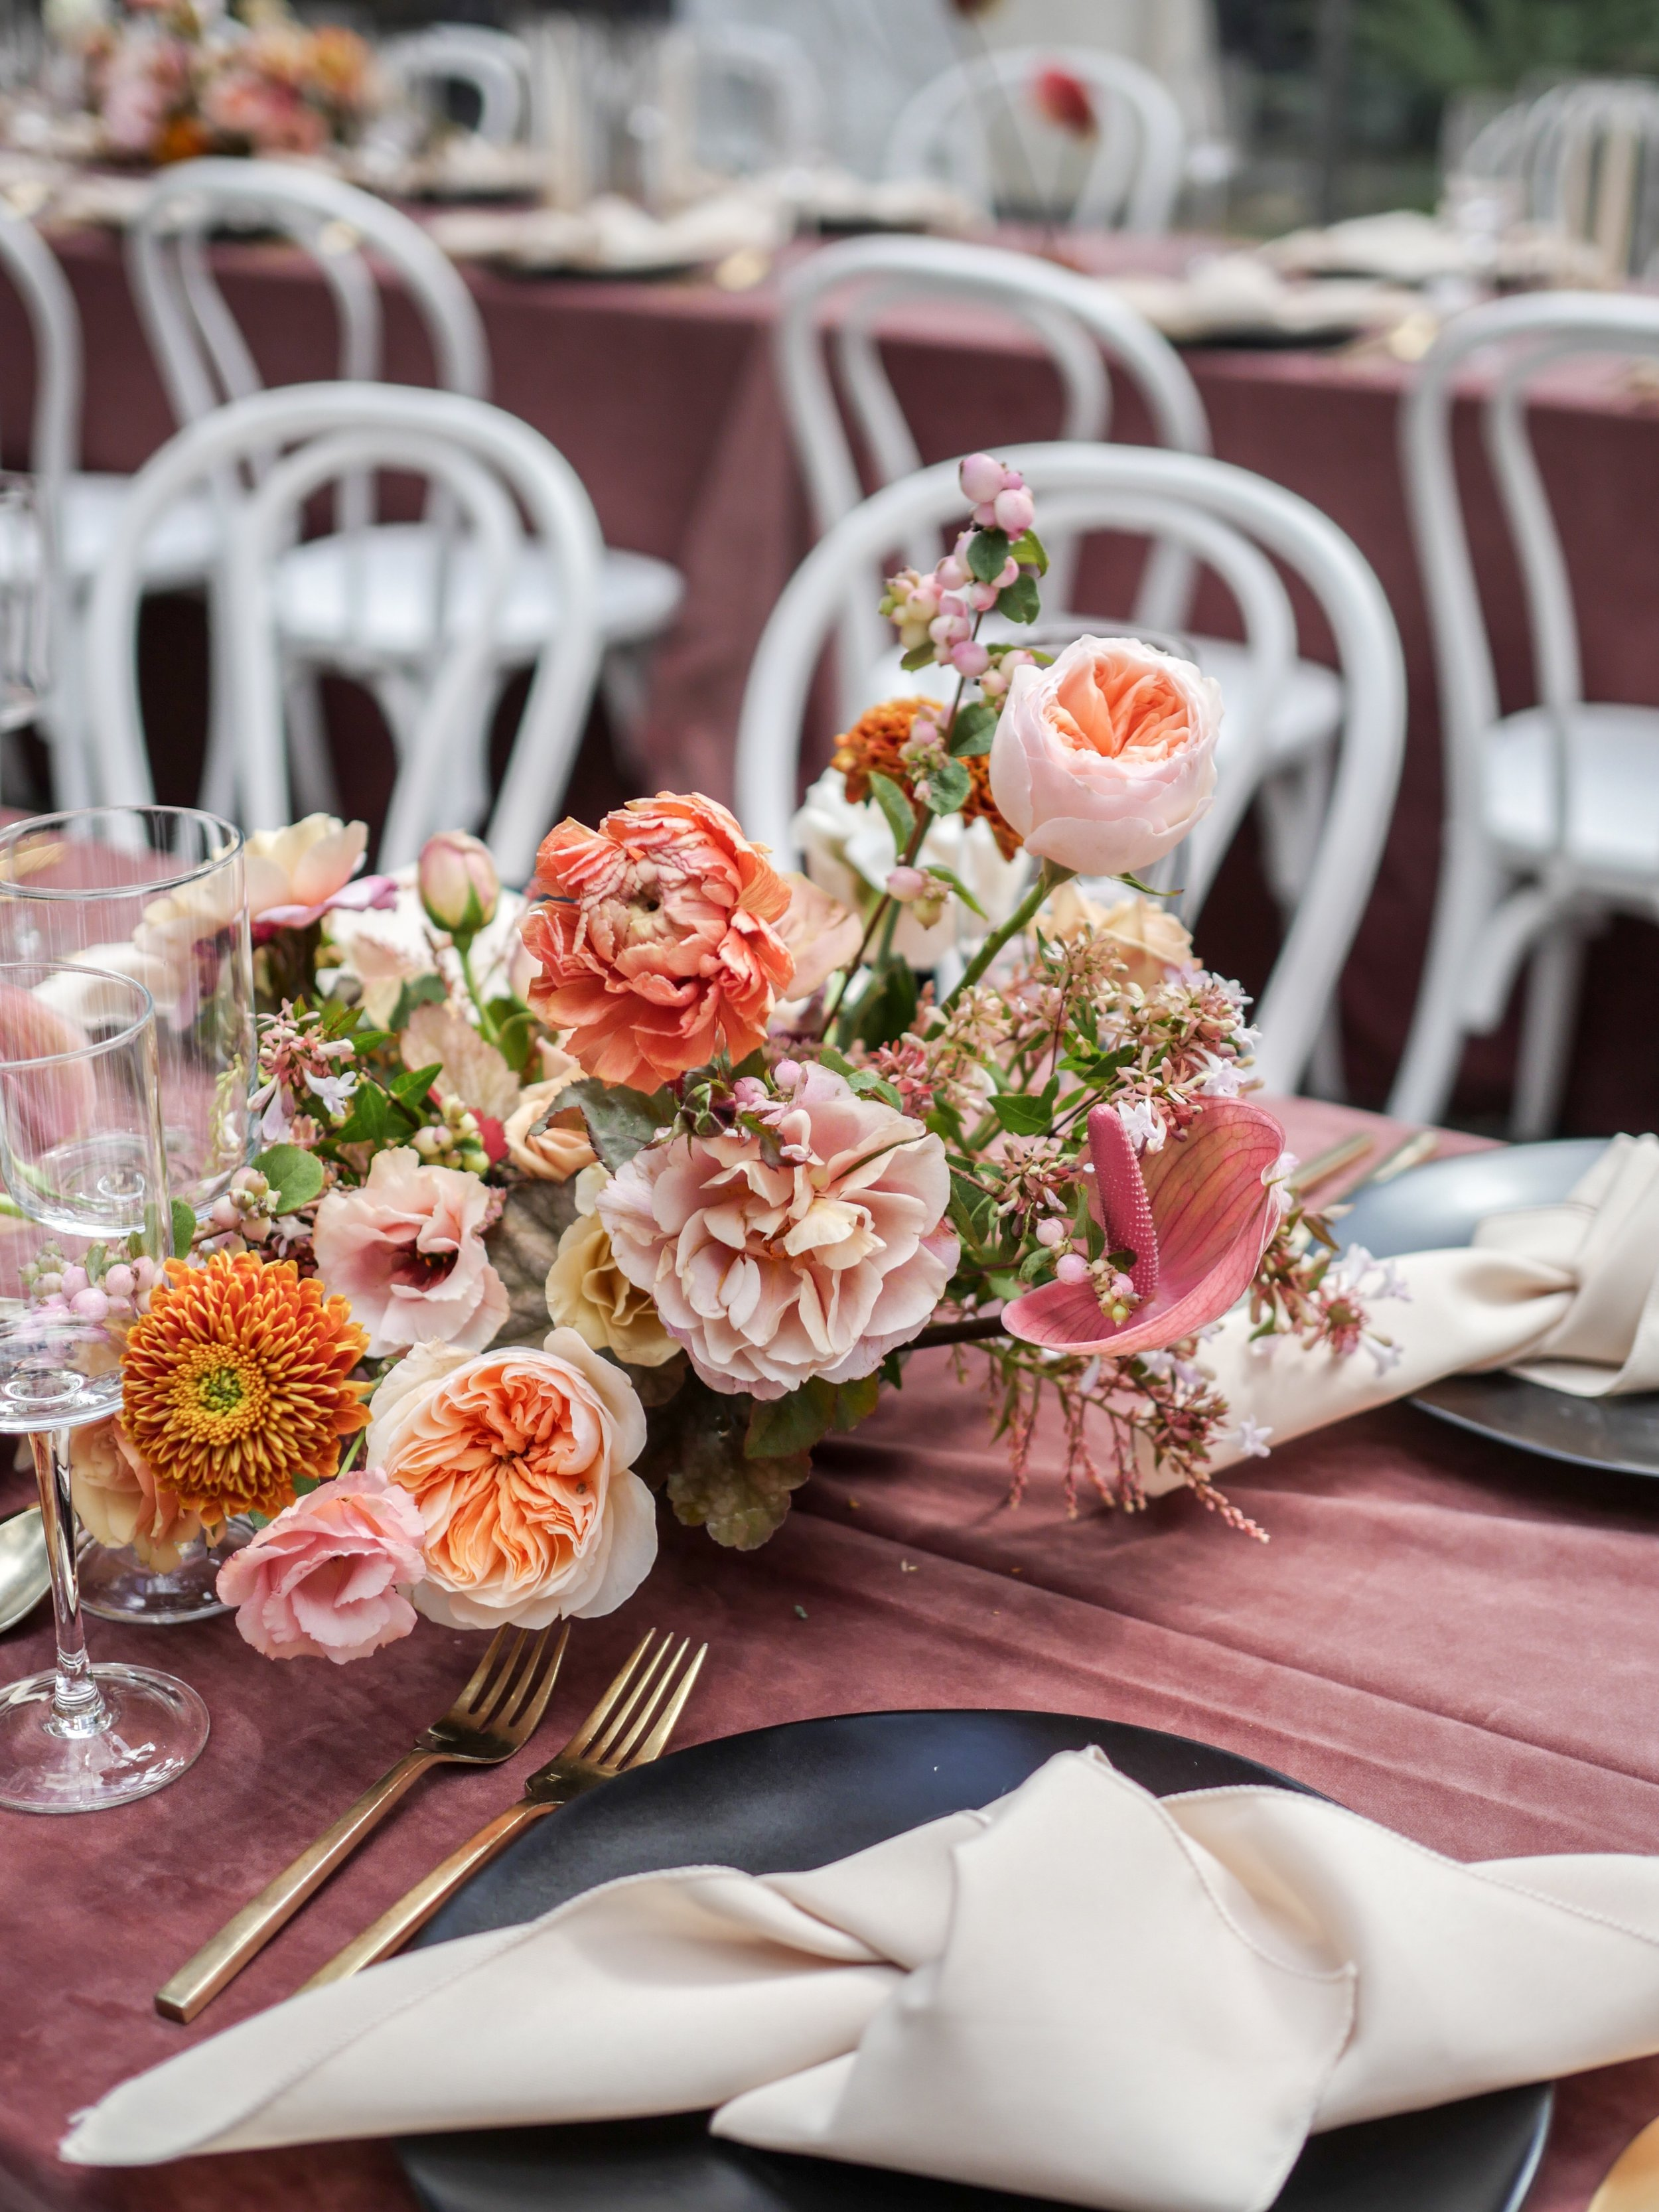 Flower centerpiece by Color Theory Collective